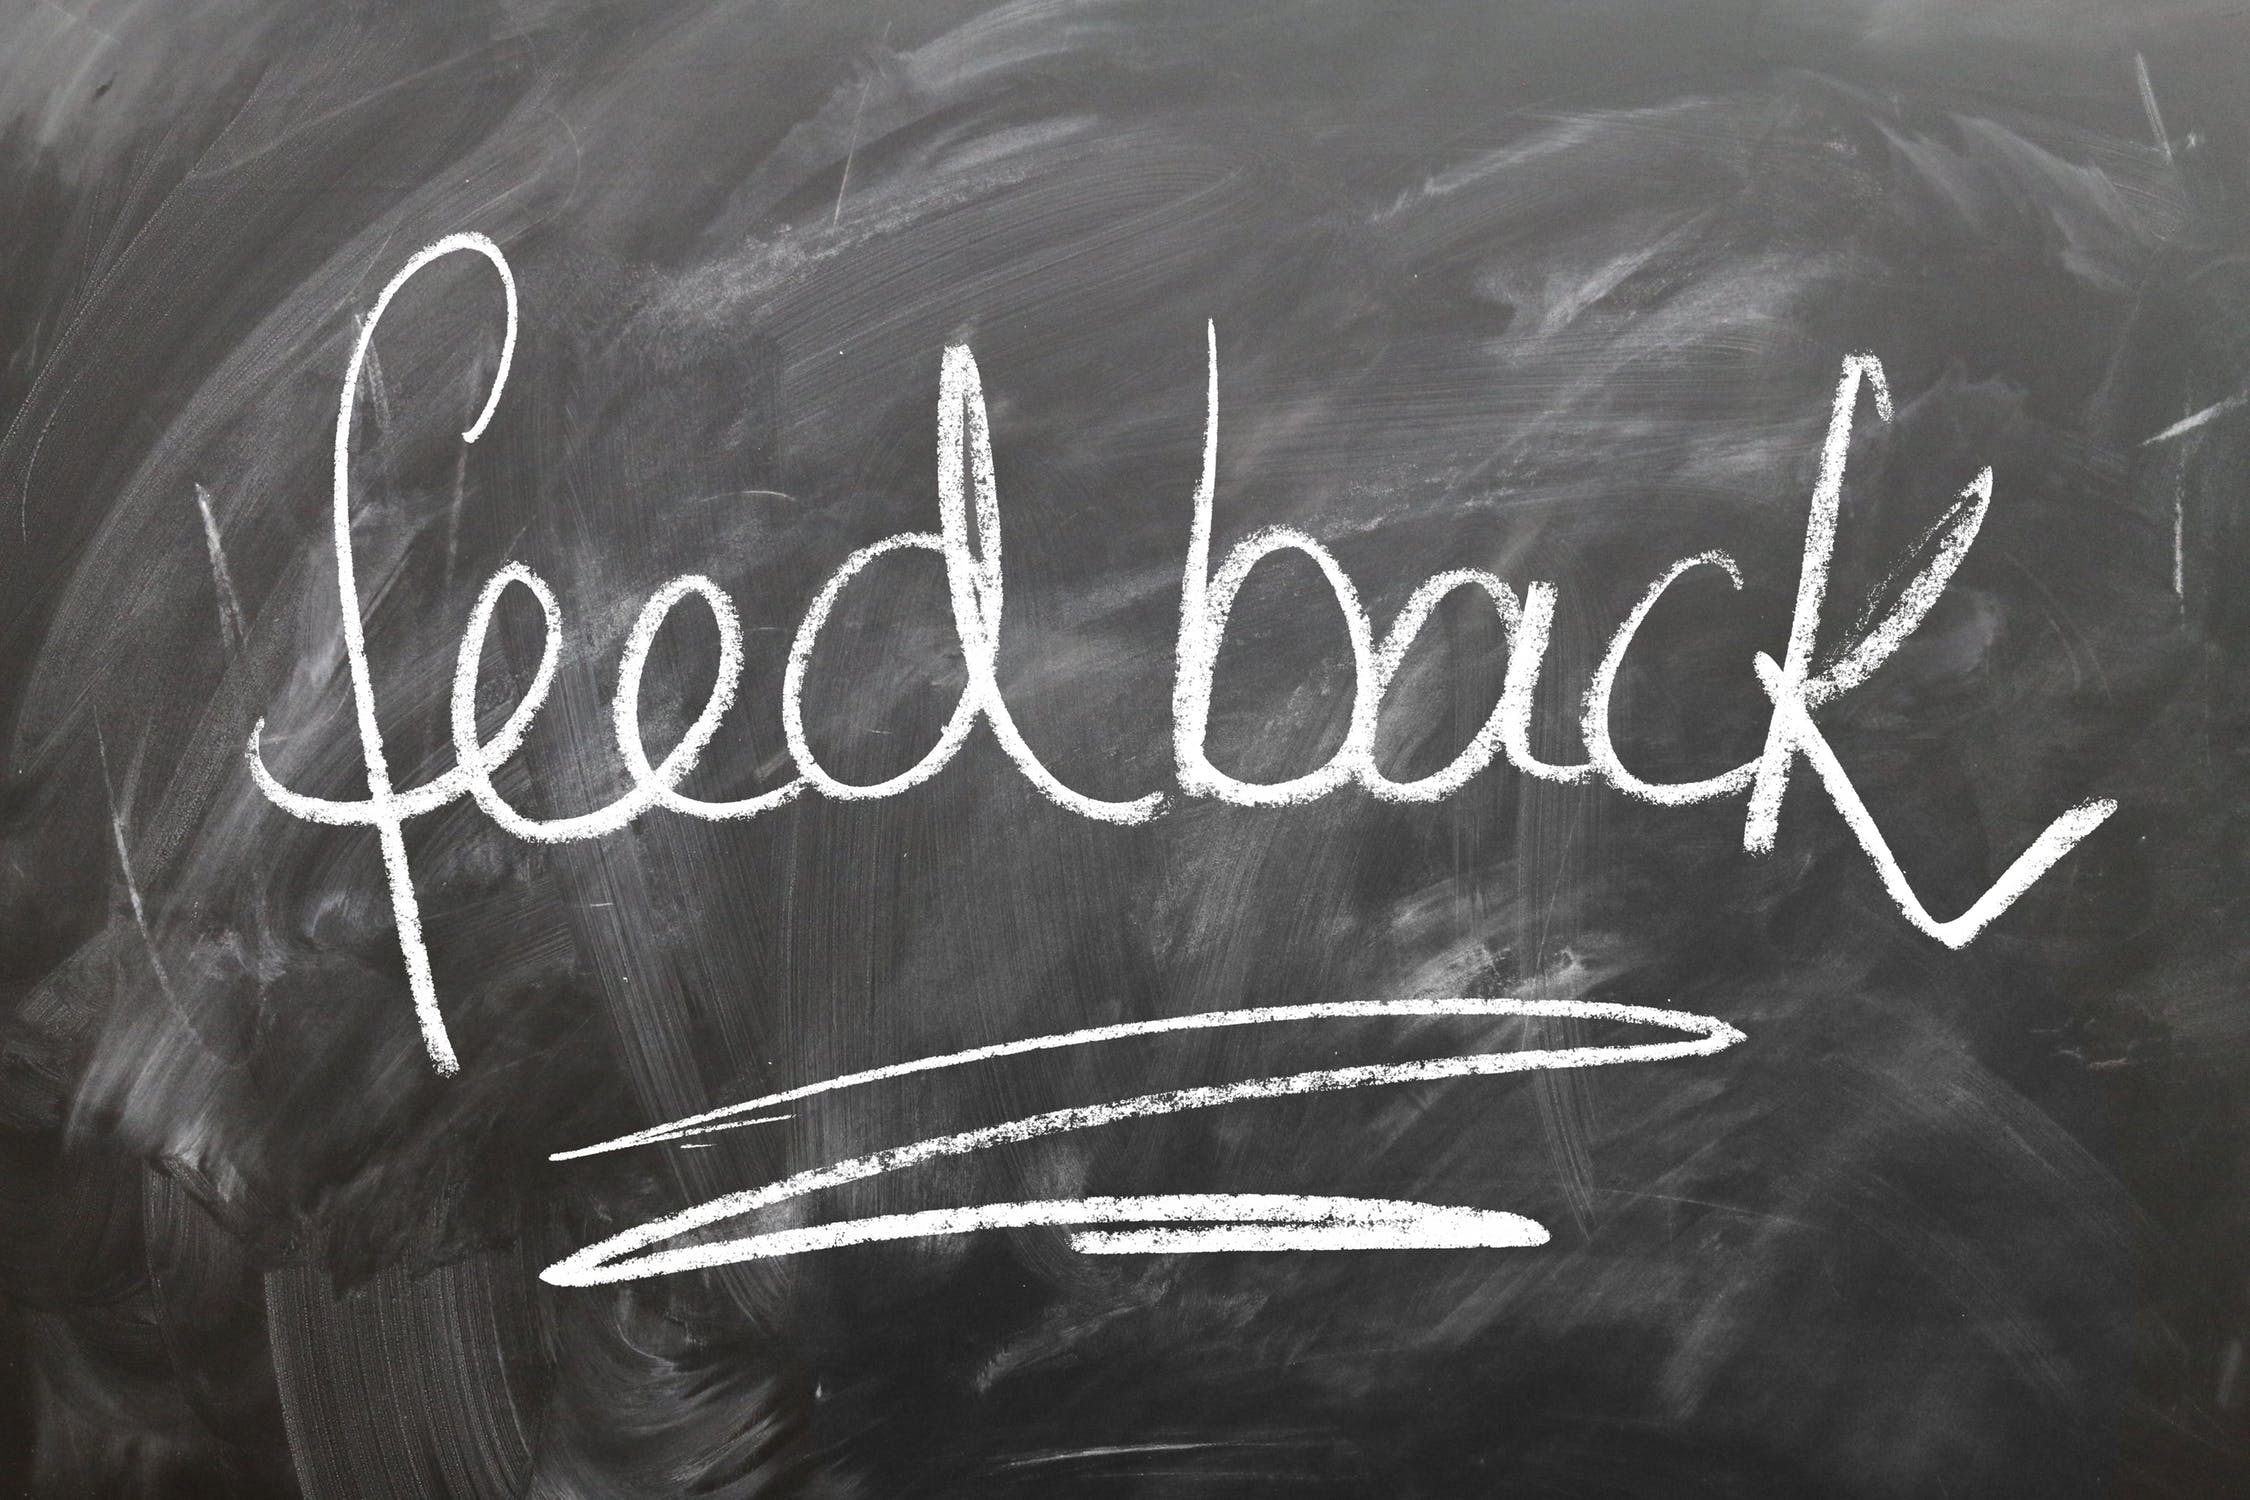 Feedback from review signals